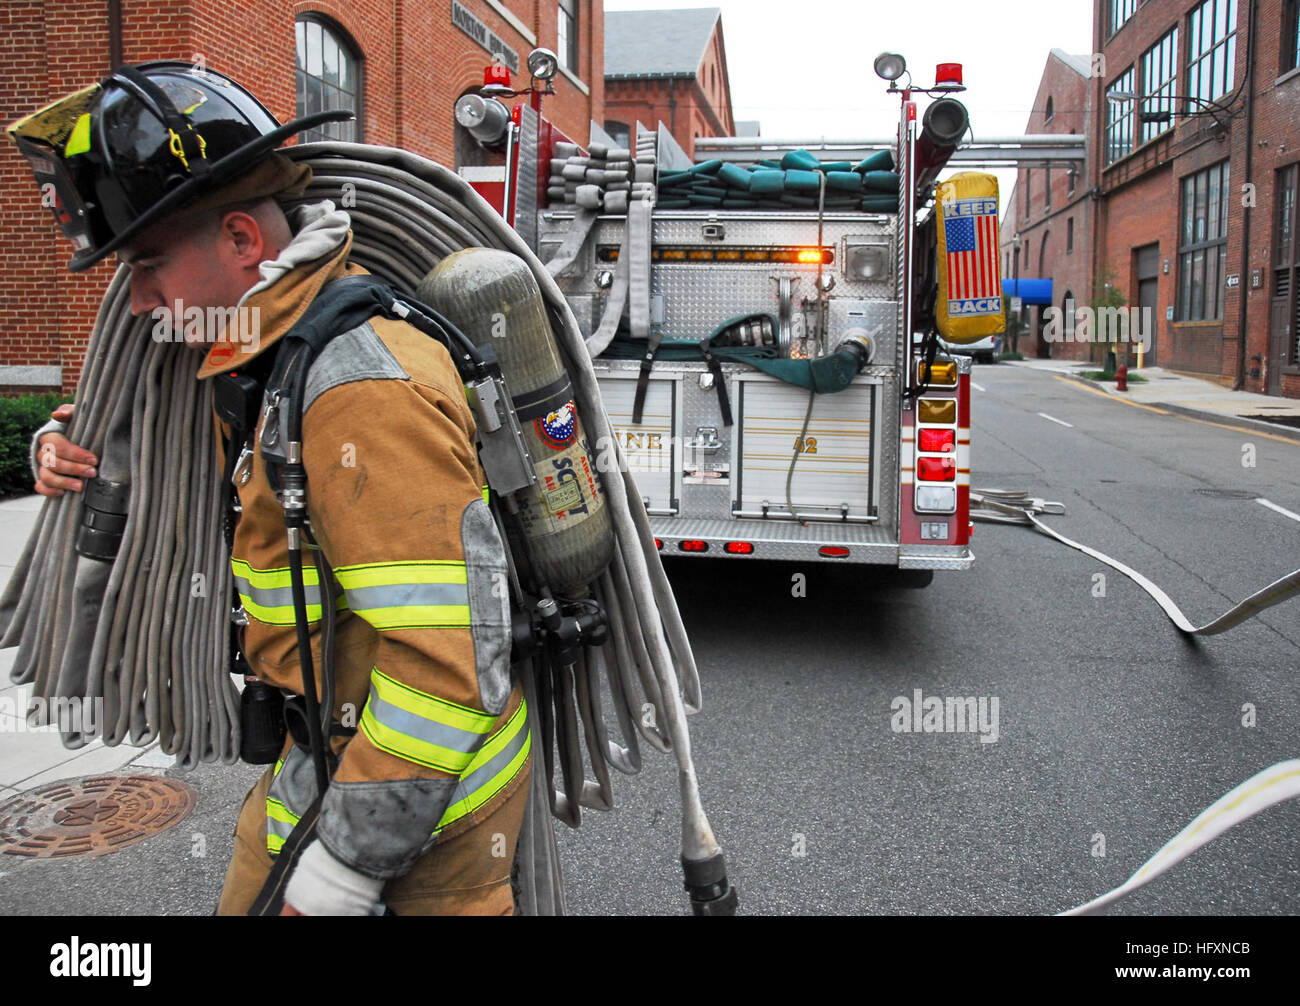 090723-N-8732C-003  WASHINGTON (July 23, 2009) A Naval Support Activity Washington (NSAW) firefighter pulls hose Stock Photo